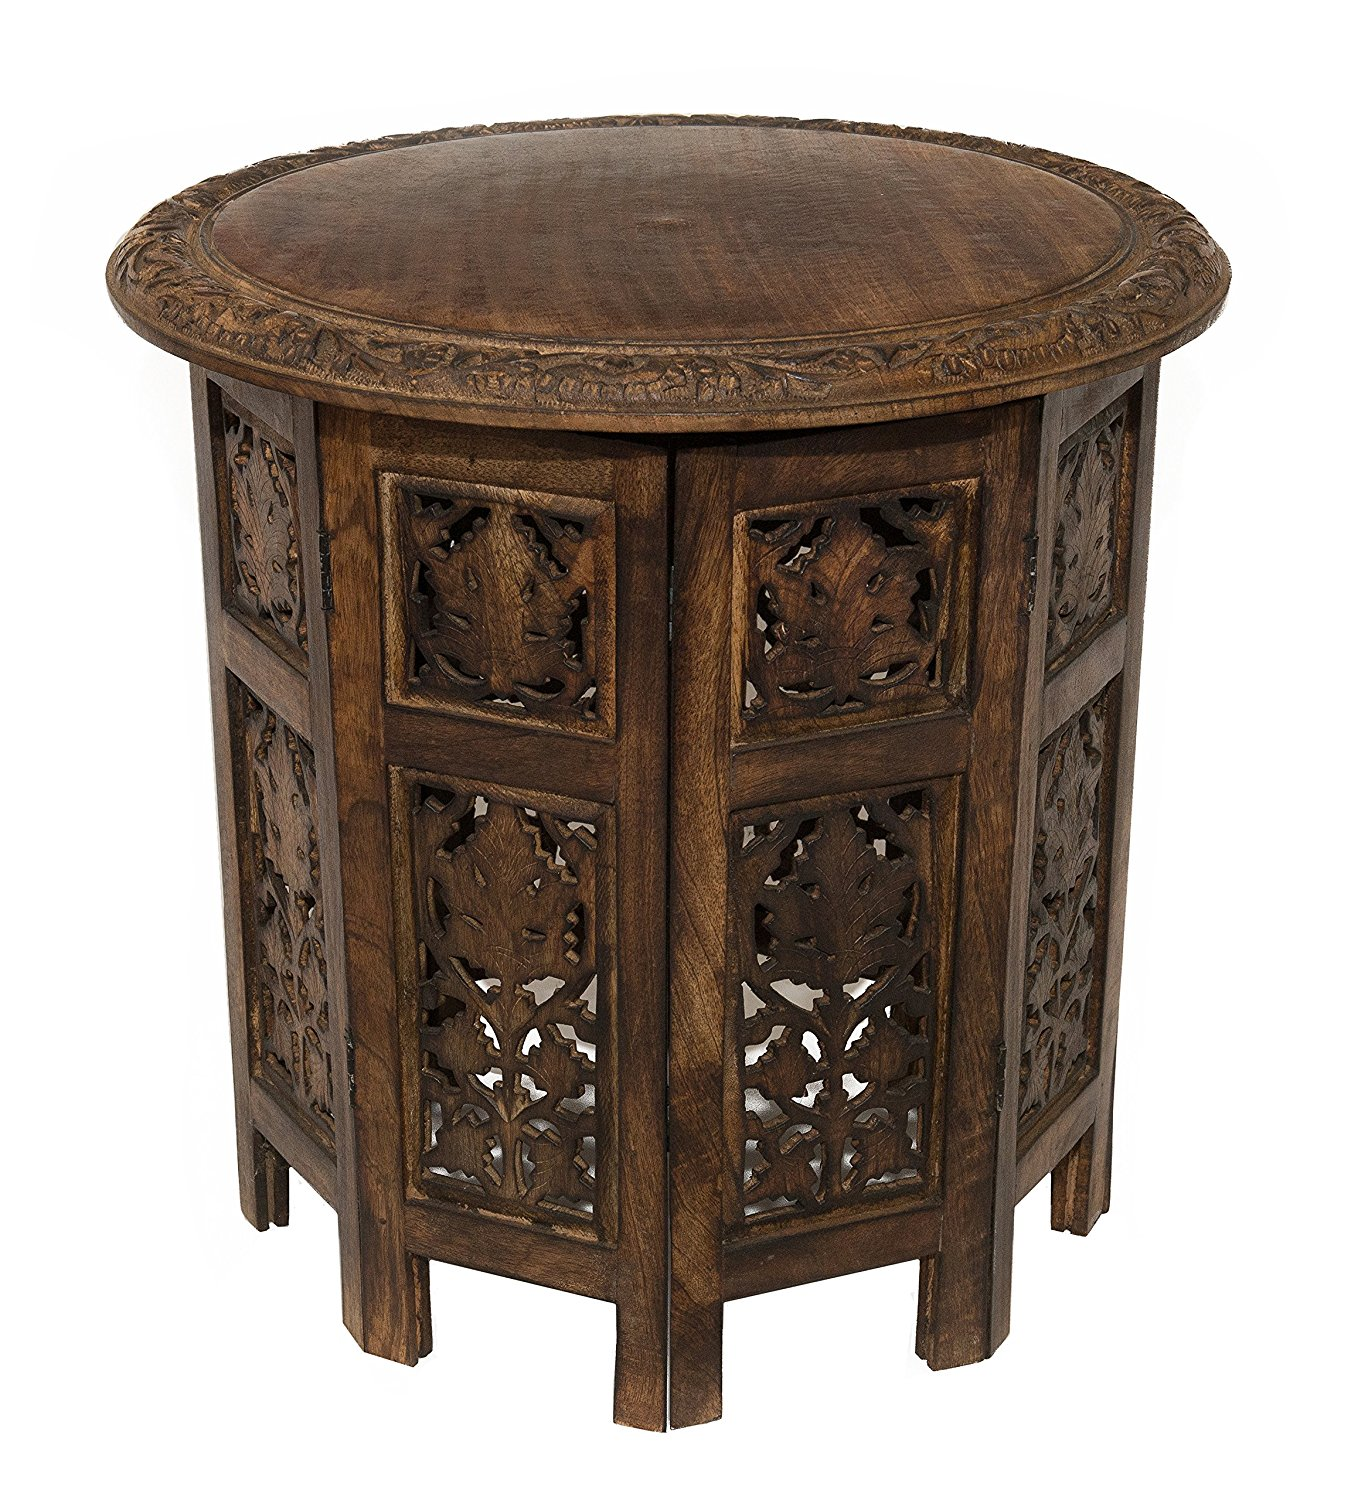 lovely small accent table for ornate unique end tables wooden round mission style sofa kitchen legs white garden stool pier one christmas pillows folding bistro metal ikea antique